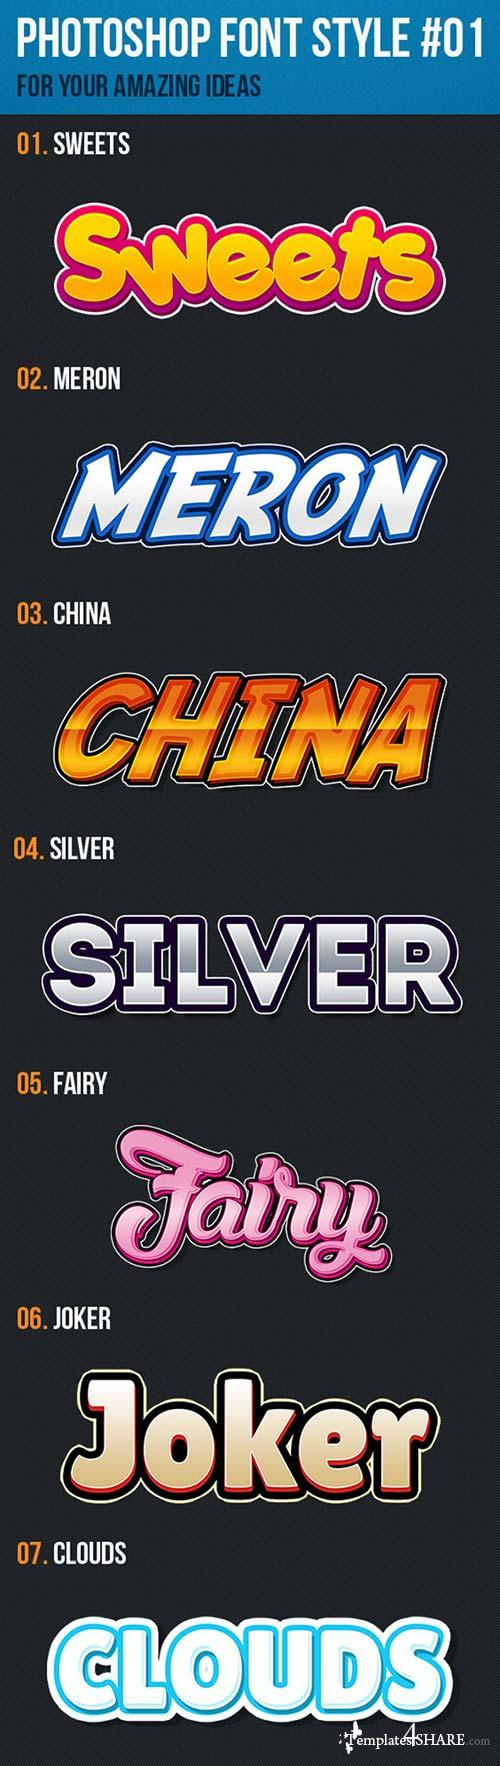 GraphicRiver 10 Font Style for Game Logo #01